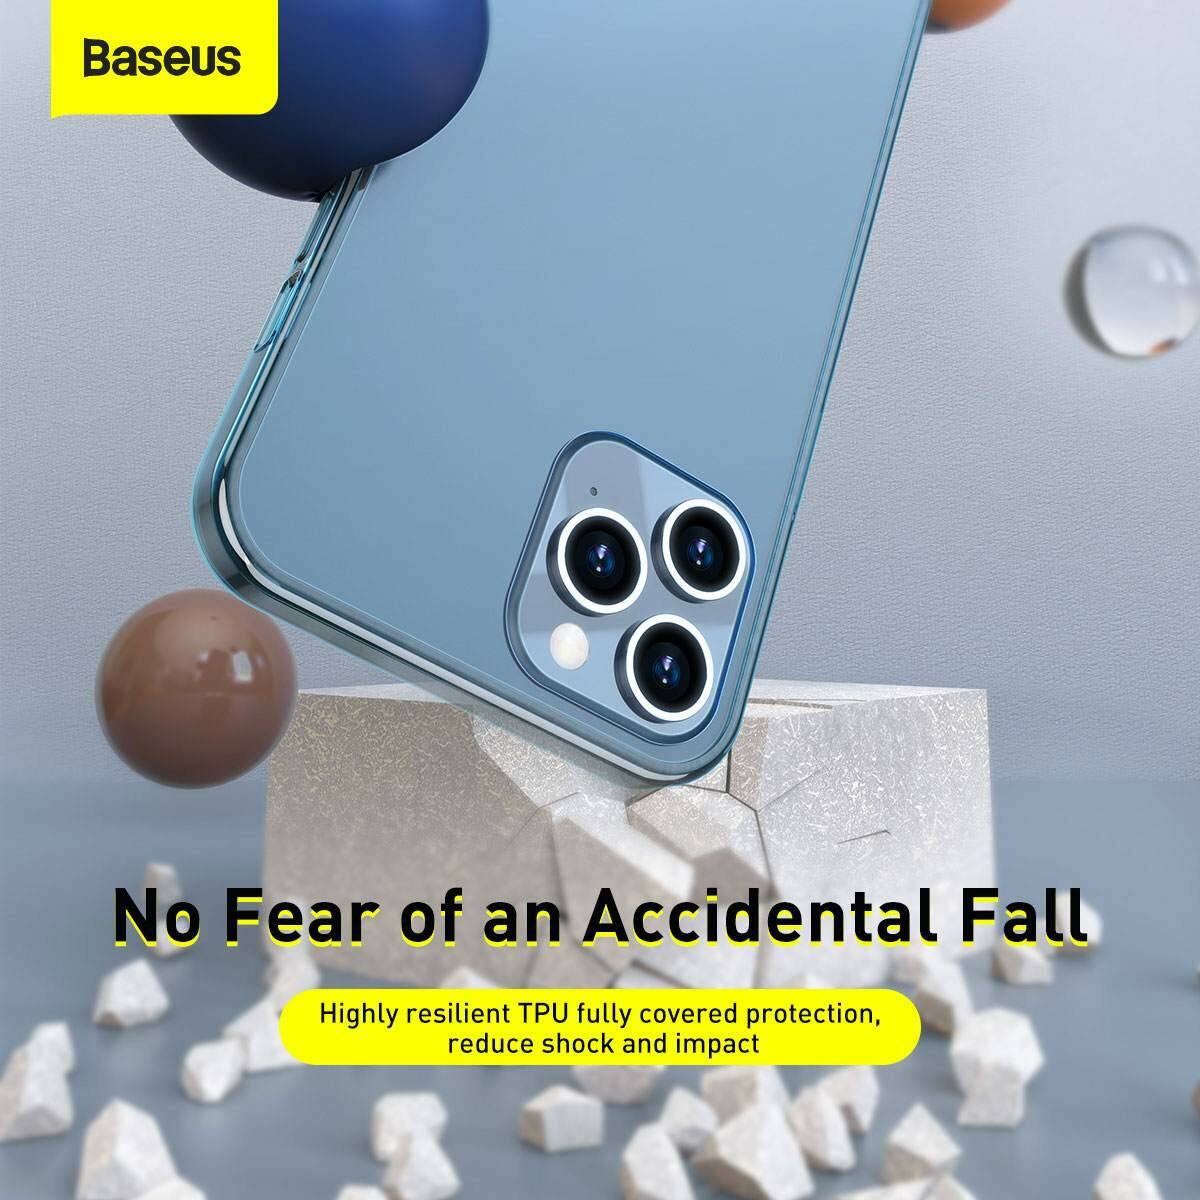 Baseus iPhone 12 mini tok, Frosted Glass, fekete (WIAPIPH54N-WS01)